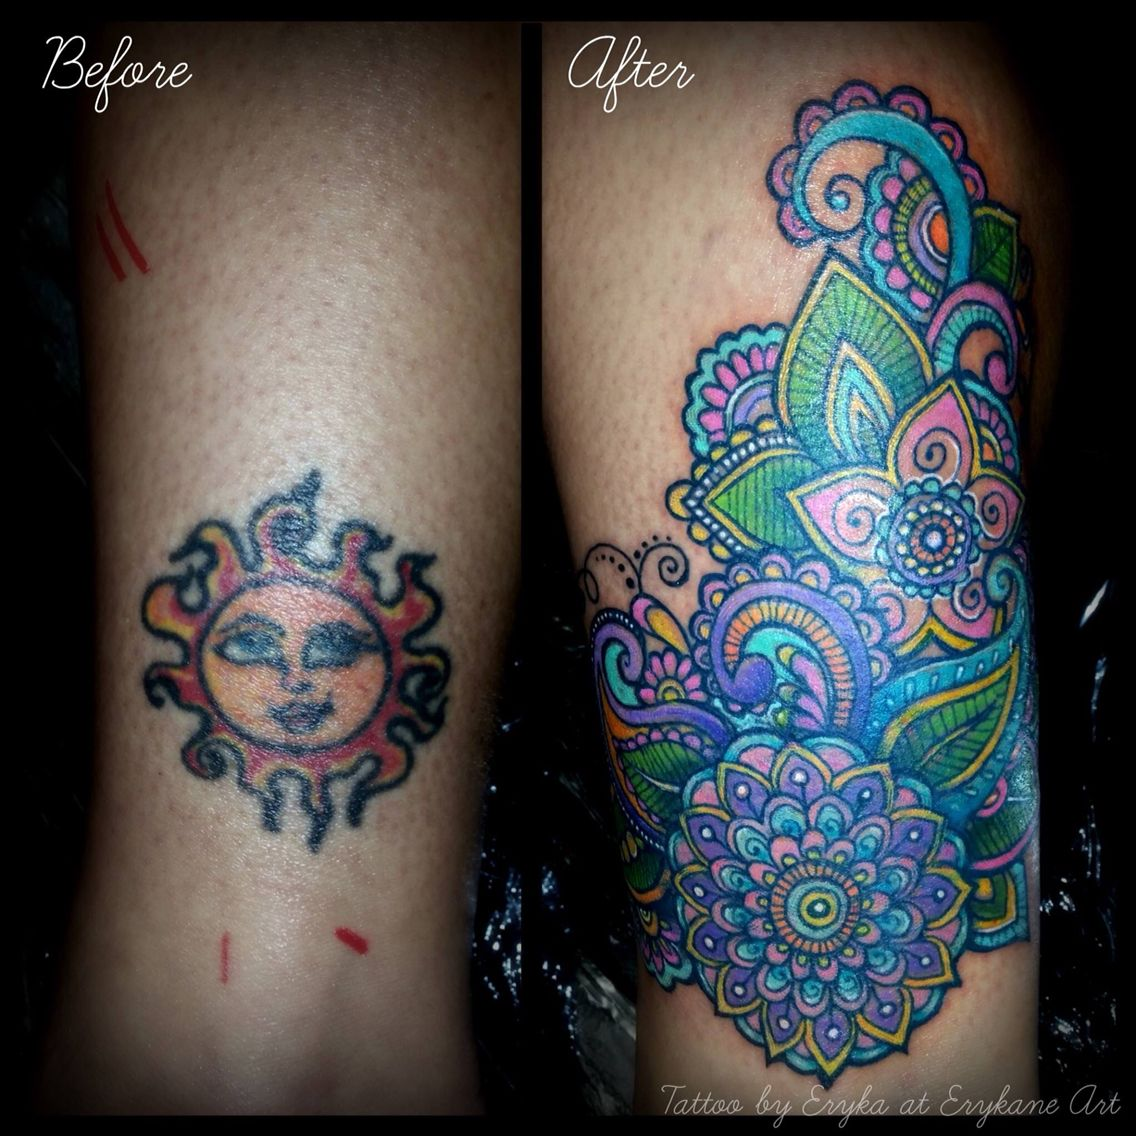 Tattoo before & after coverup! Love this. The colors are